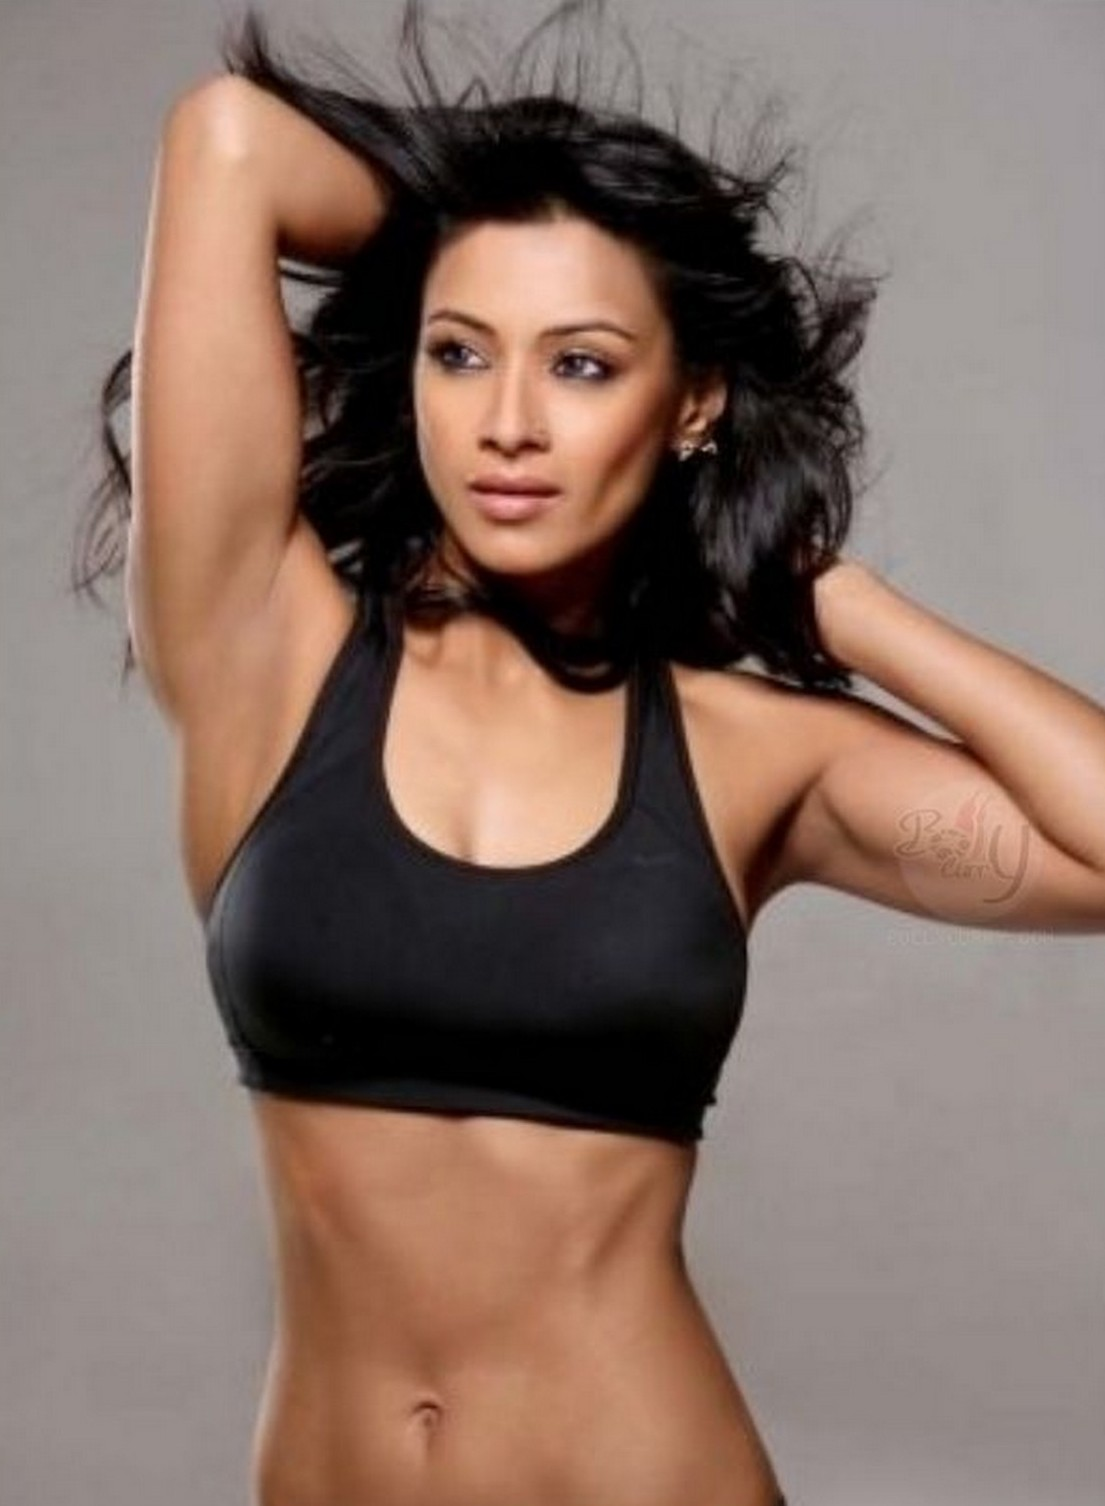 Barkha Bisht 2004 naked (66 photo), Topless, Cleavage, Boobs, butt 2006